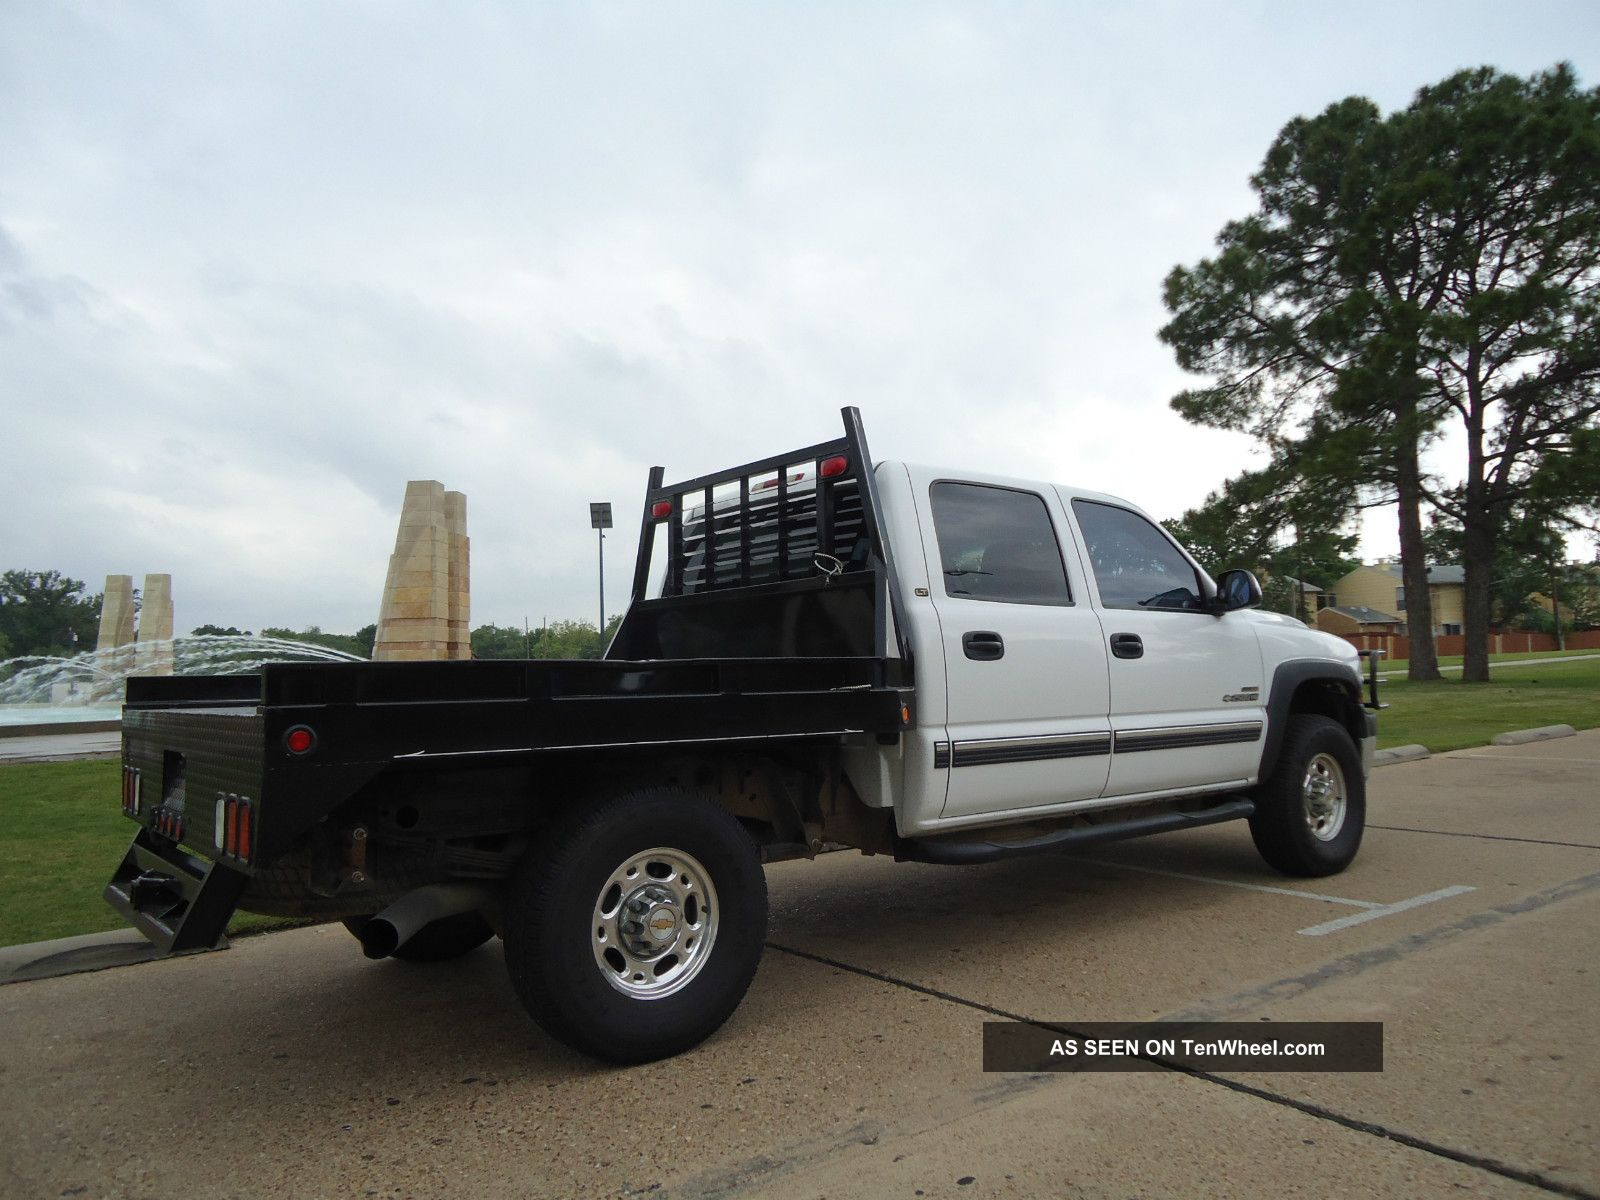 2002 Chevrolet Silverado 2500hd 4x4 Diesel Flatbed Air Ride Look